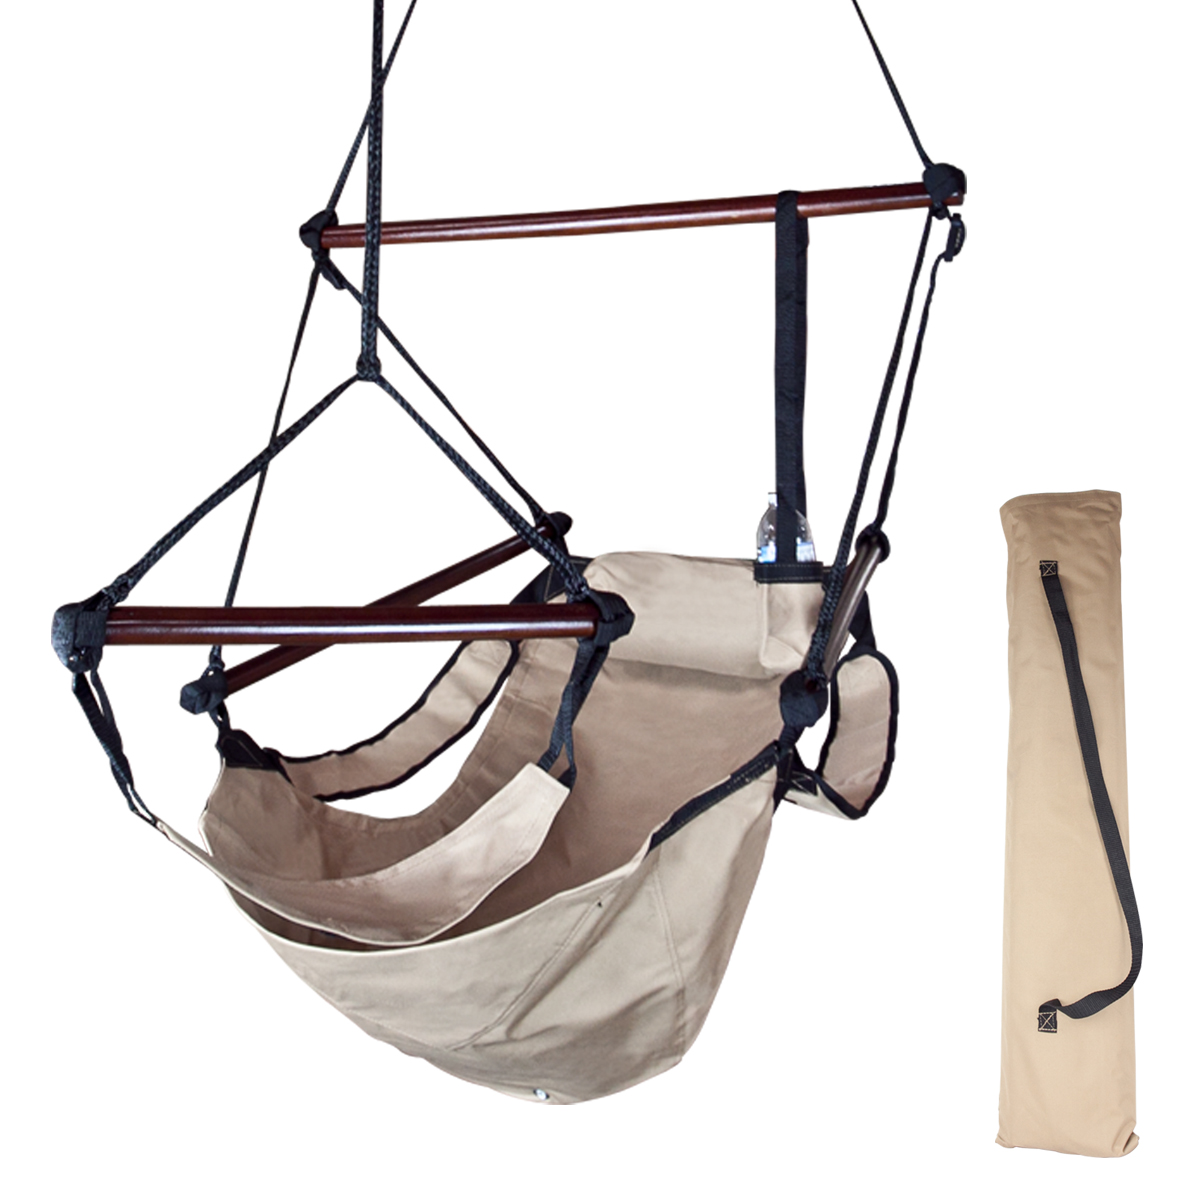 hanging patio swing chair lewis and clark camping chairs beige deluxe air hammock tree